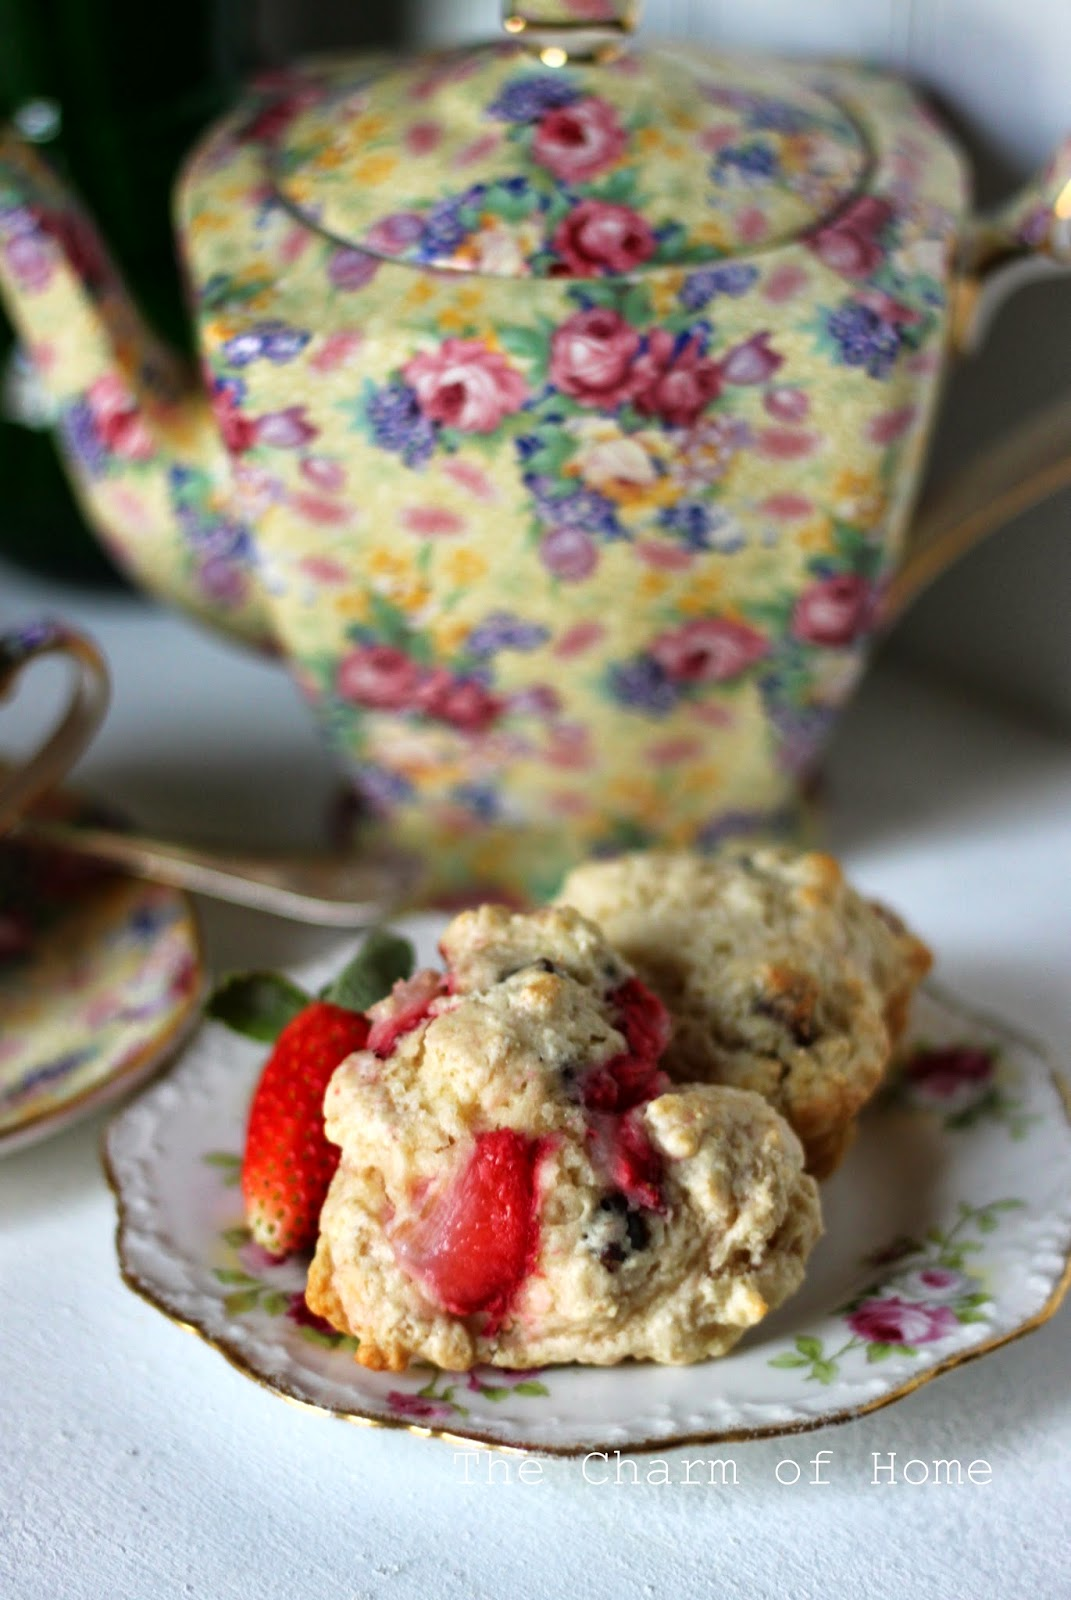 Strawberry and Chocolate Chip Scones, The Charm of Home